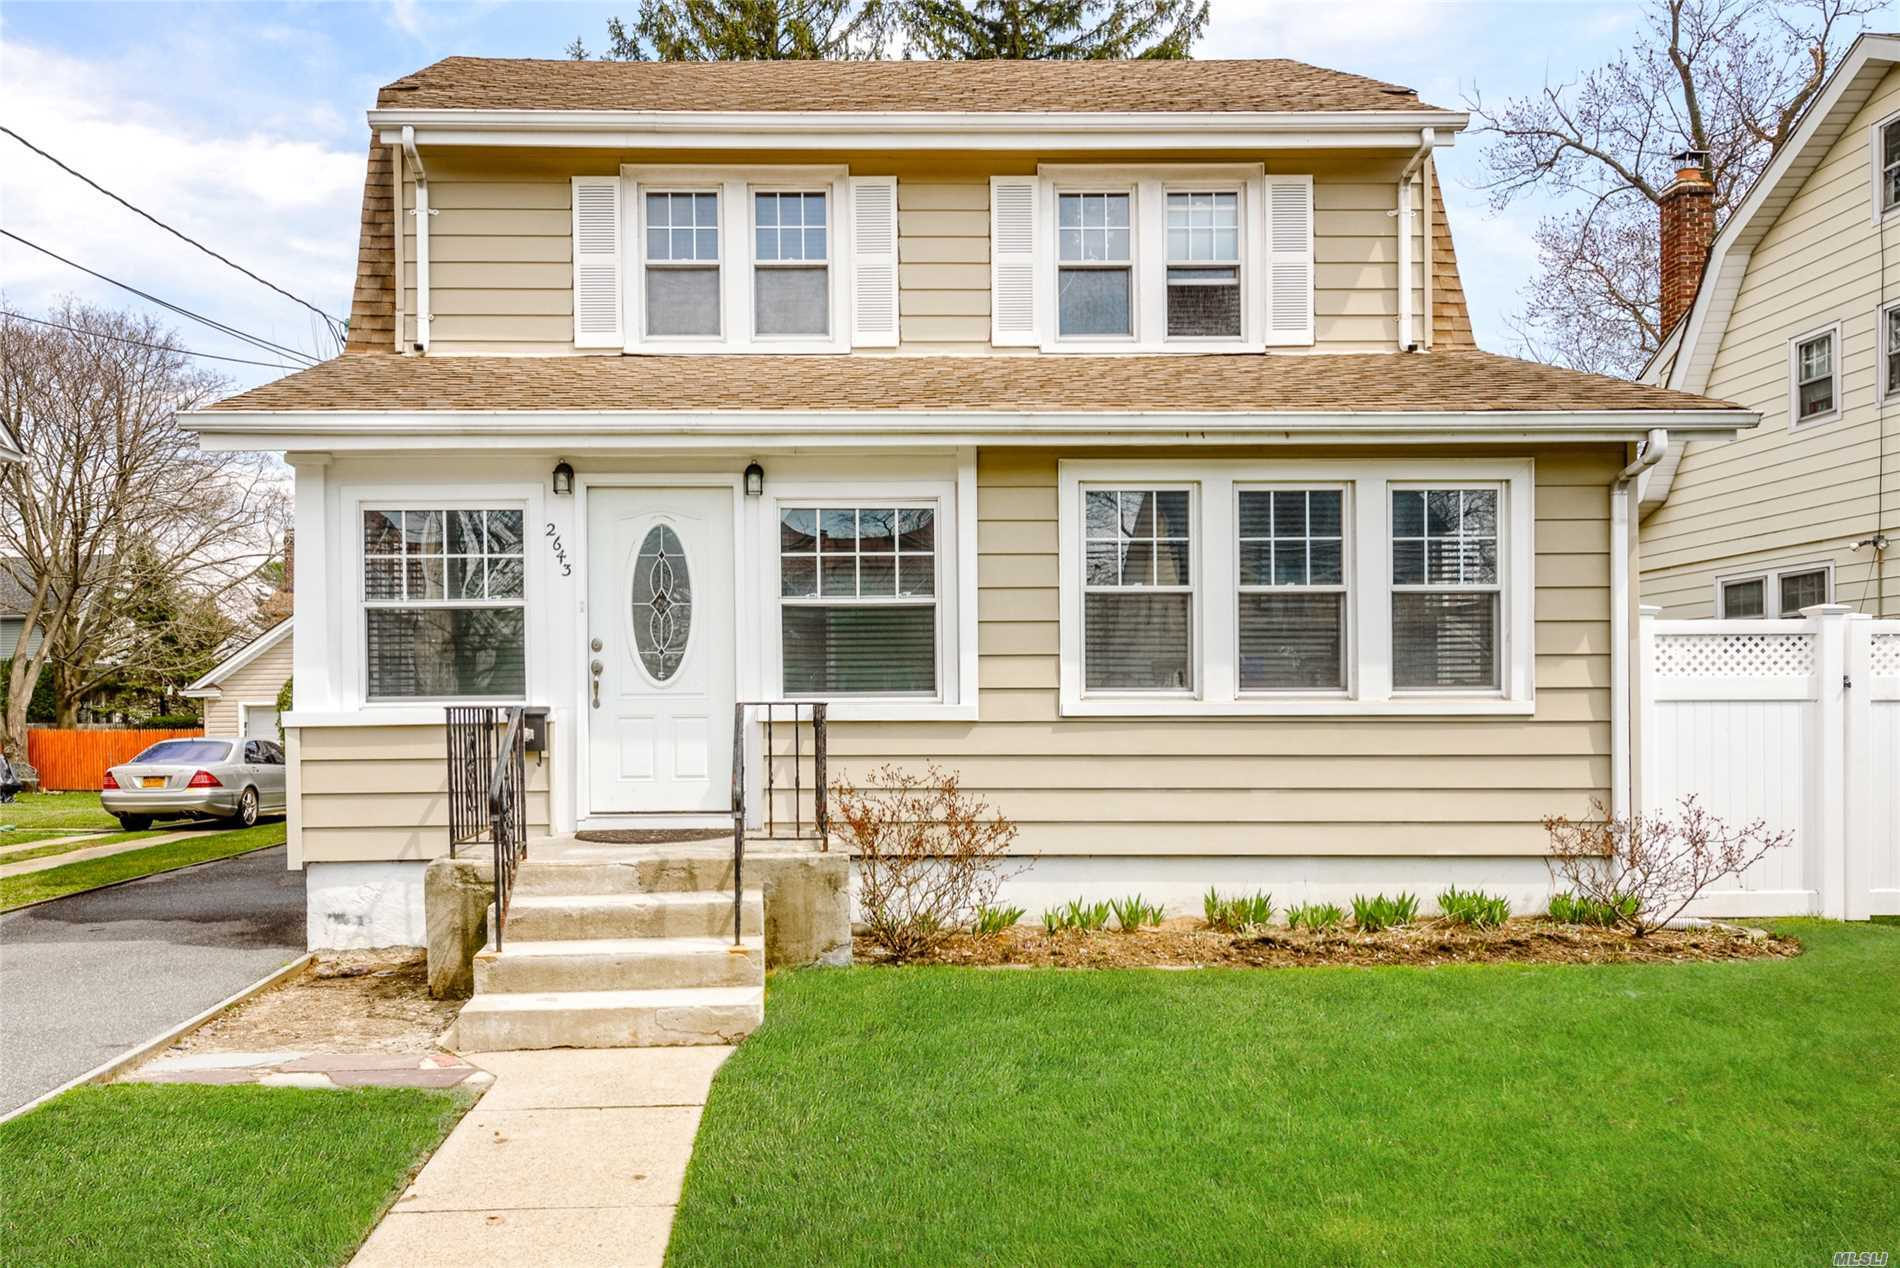 3 Bedroom, 2 Full Bath Dutch Colonial Set 50 x !00 Property On Quiet Street In Old Towne Baldwin. House Was Renovated In 2011, New Kitchen, 2 New Baths, Gas Boiler And More. Low Taxes And No Flood Insurance Needed. This House Will Not Last.